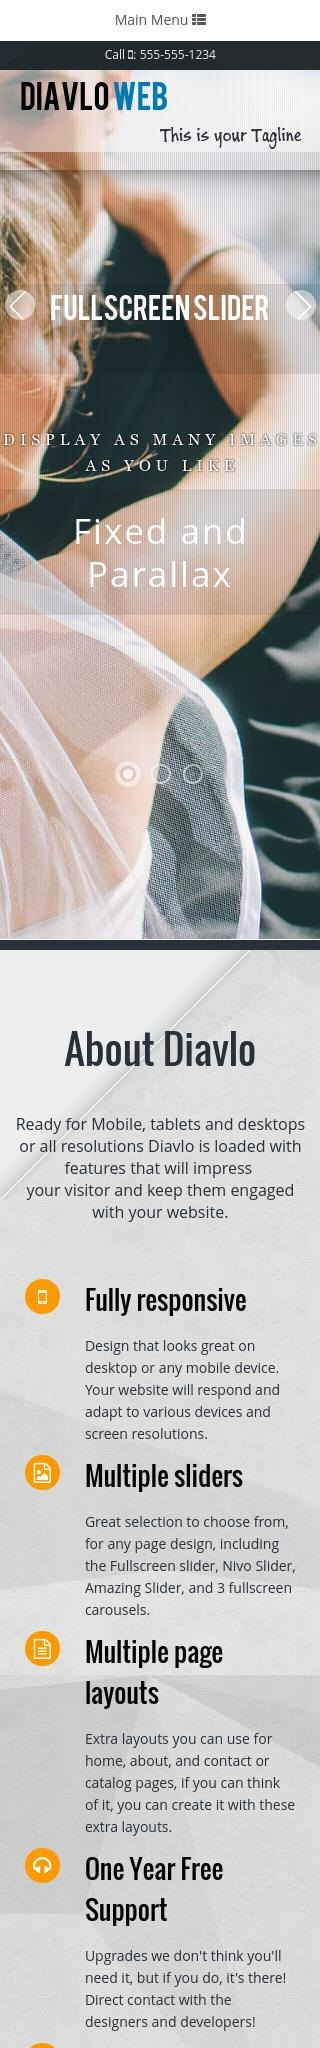 Mobile: Wedding Web Template